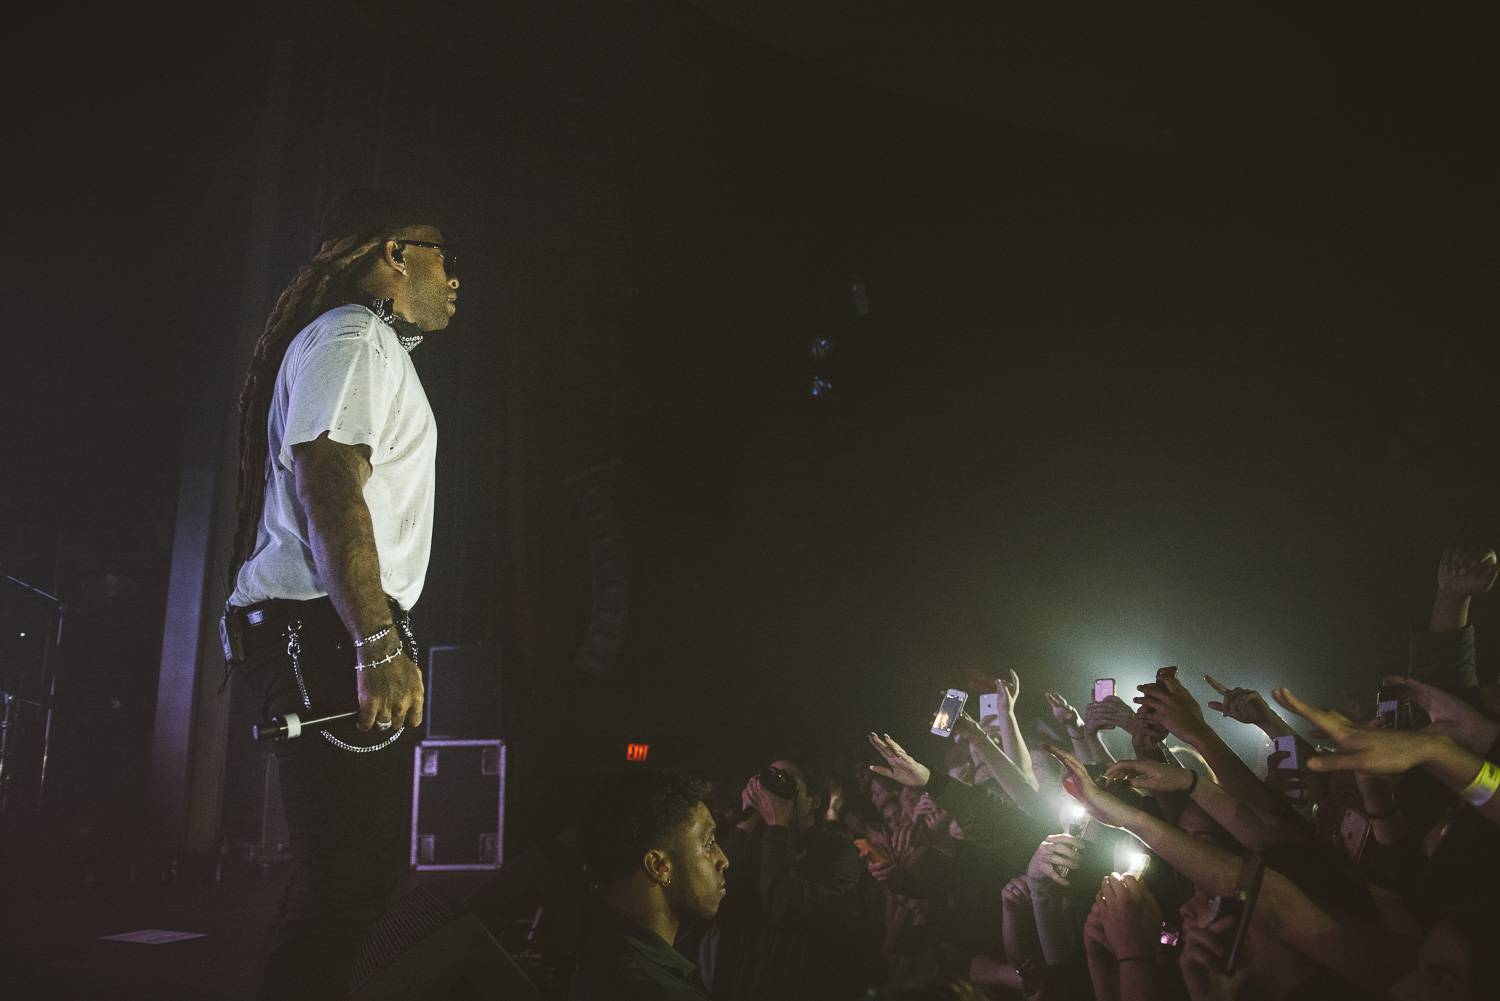 Ty Dolla Sign at the Vogue Theatre, Vancouver, Feb 28 2018. Pavel Boiko photo.